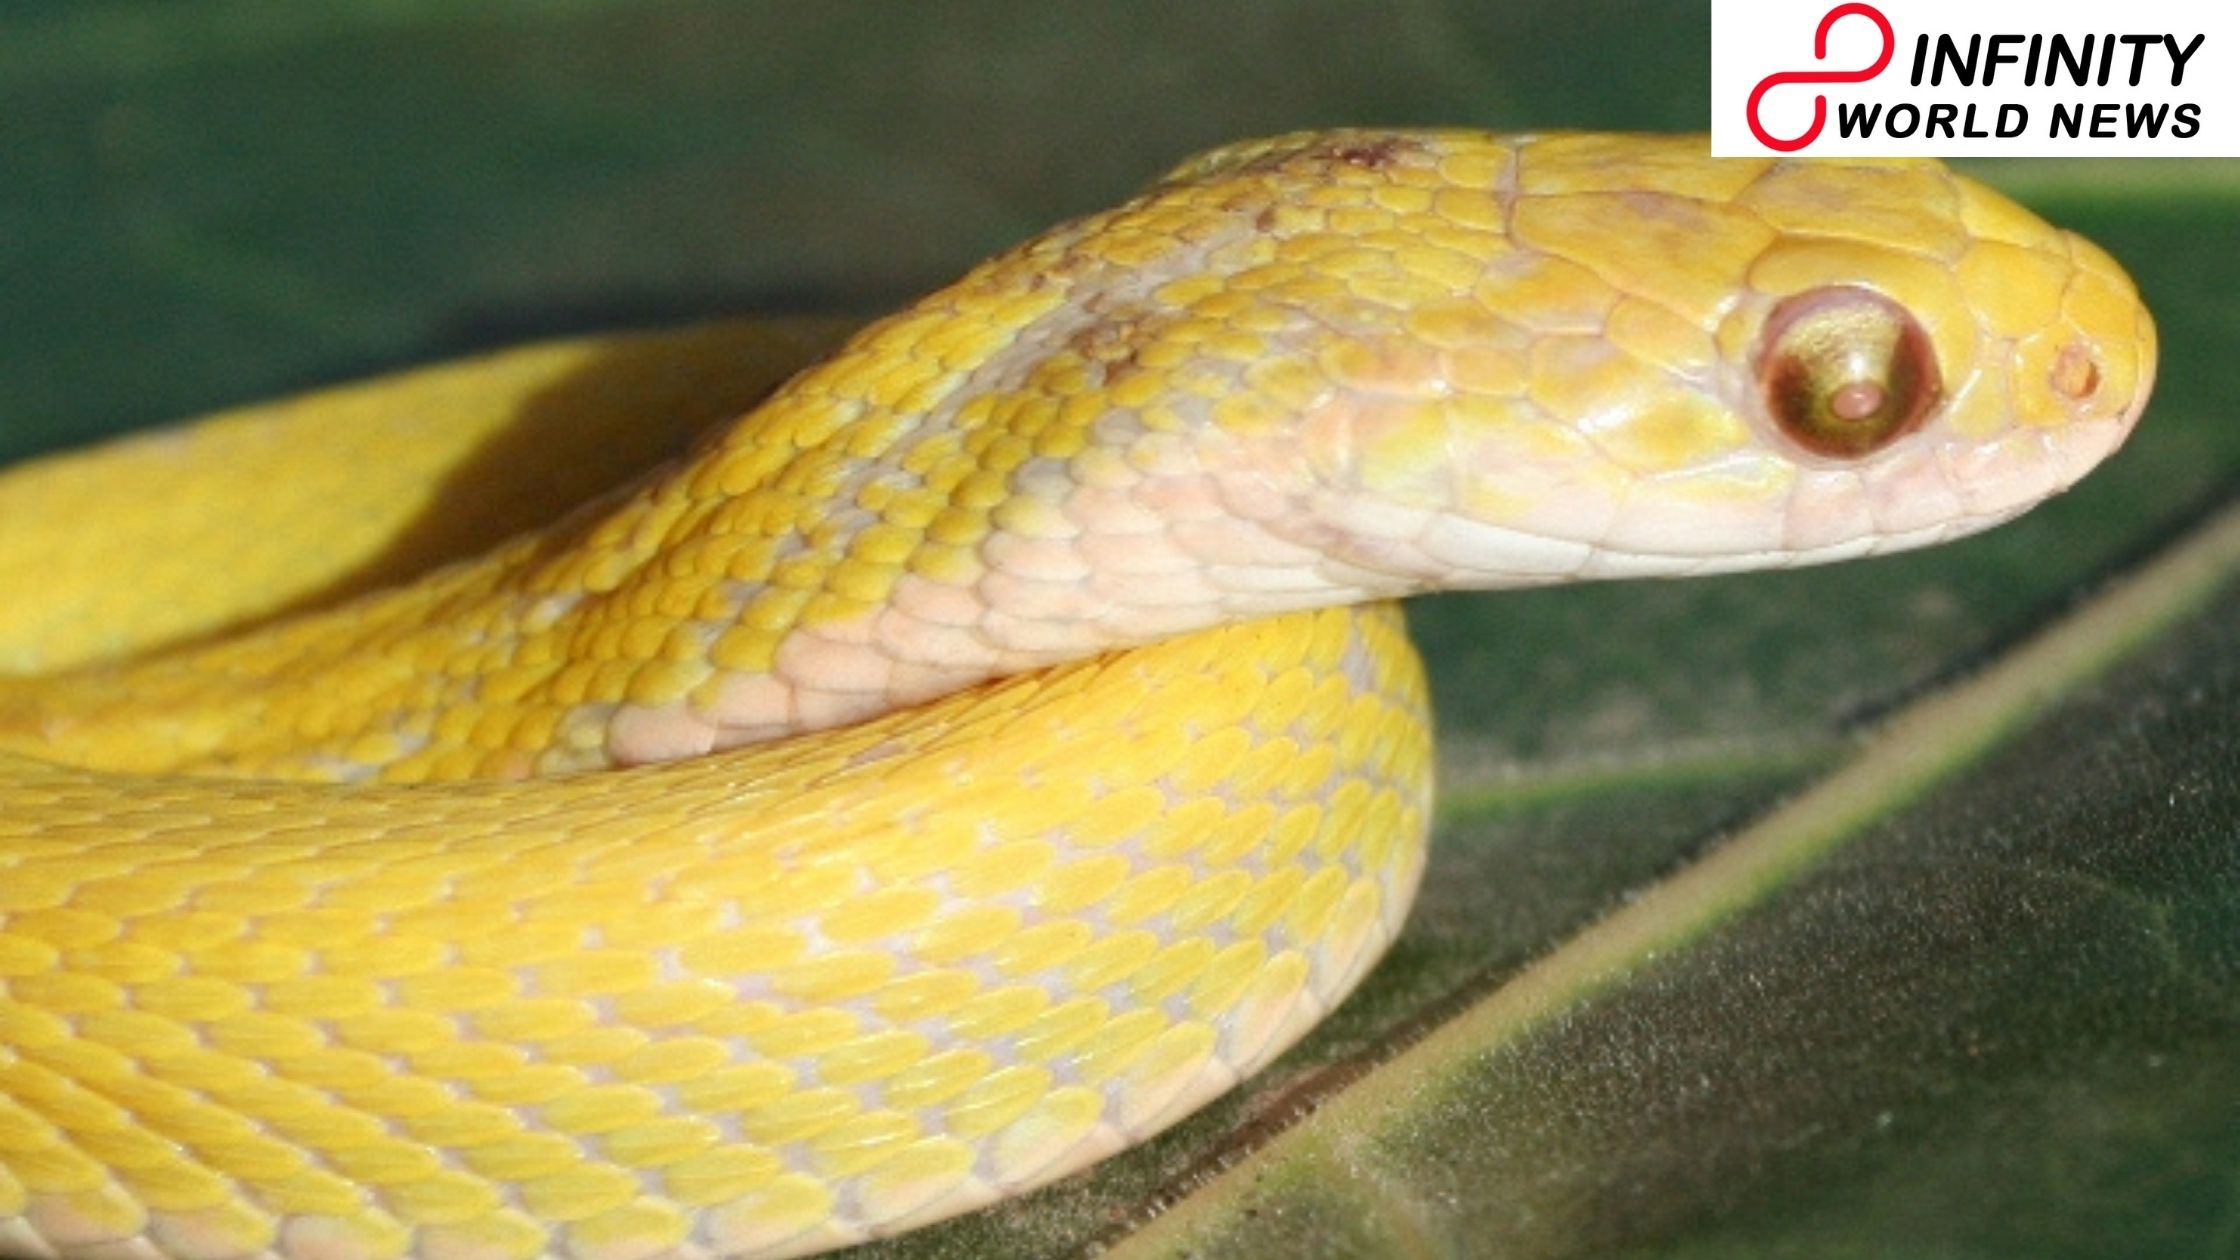 A $300 Albino Snake Steals from Pet Store in Broad Daytime By US Couple